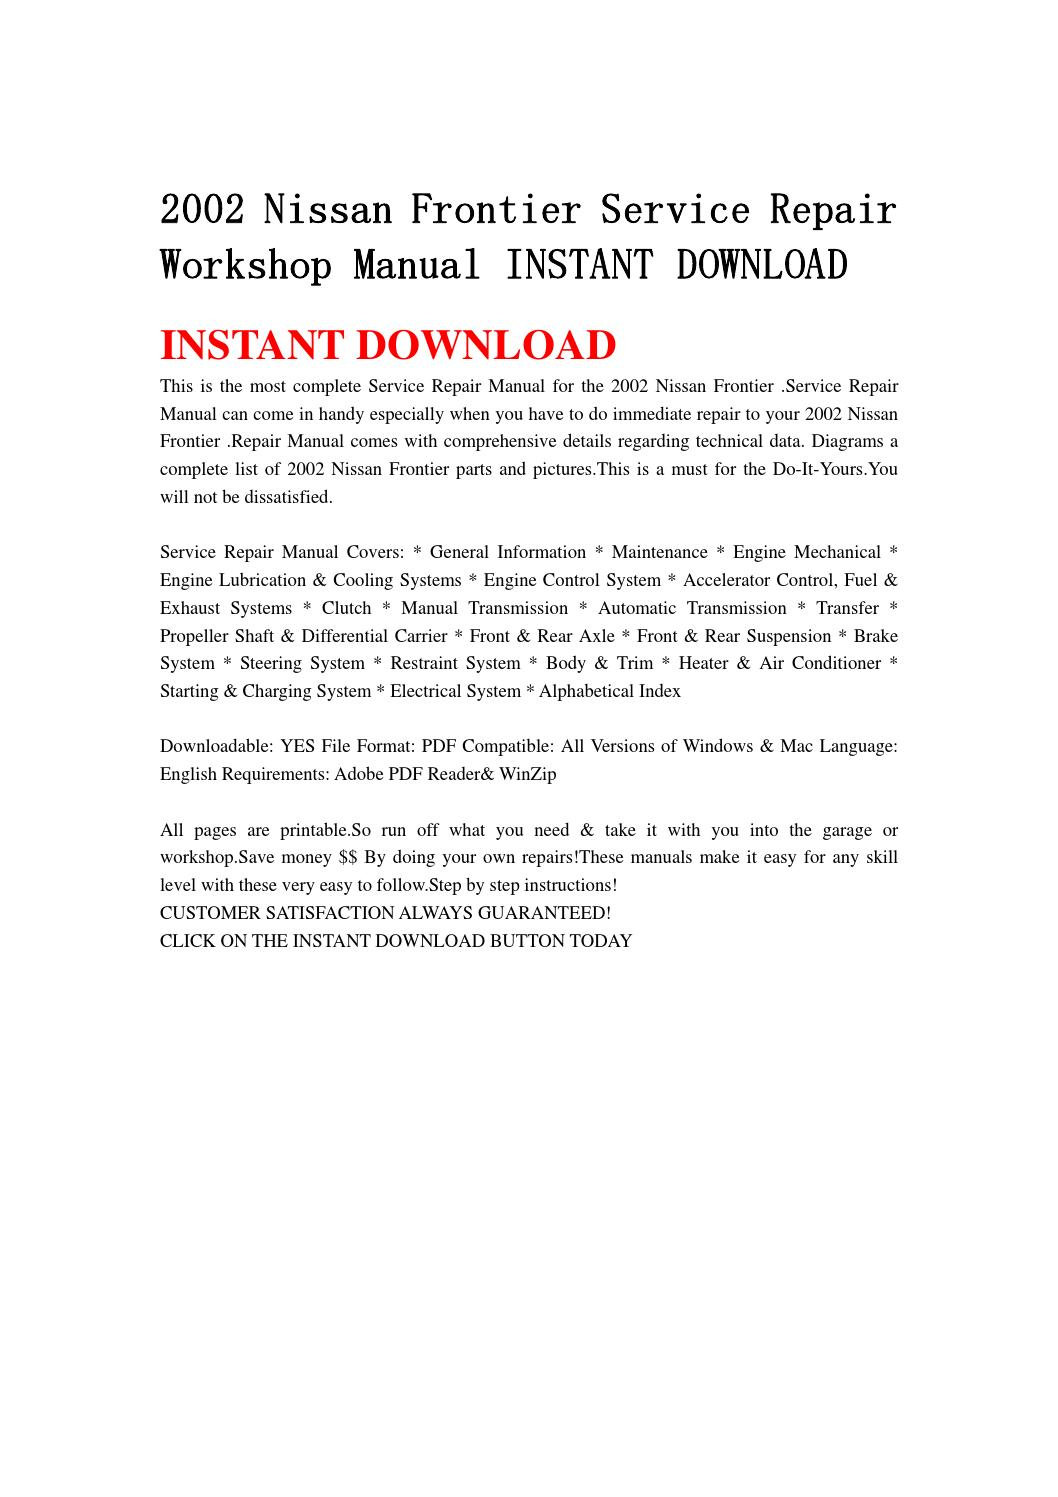 2002 Nissan Frontier Service Repair Workshop Manual Instant Download By Kmjfnh Njhy